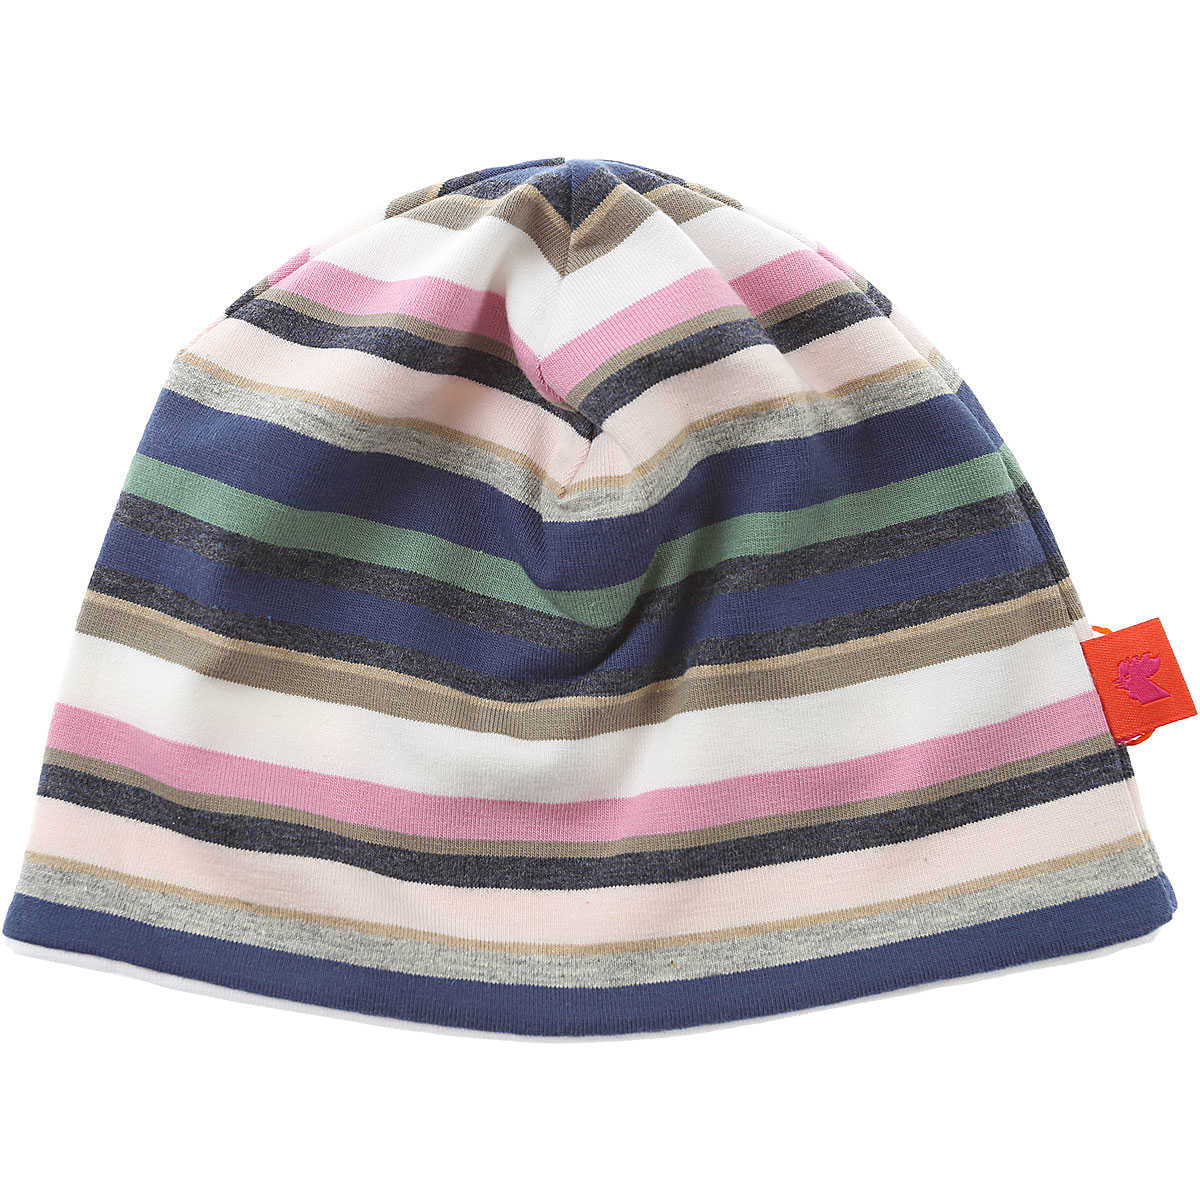 Gallo Baby Hats for Girls On Sale in Outlet Pink SE - GOOFASH